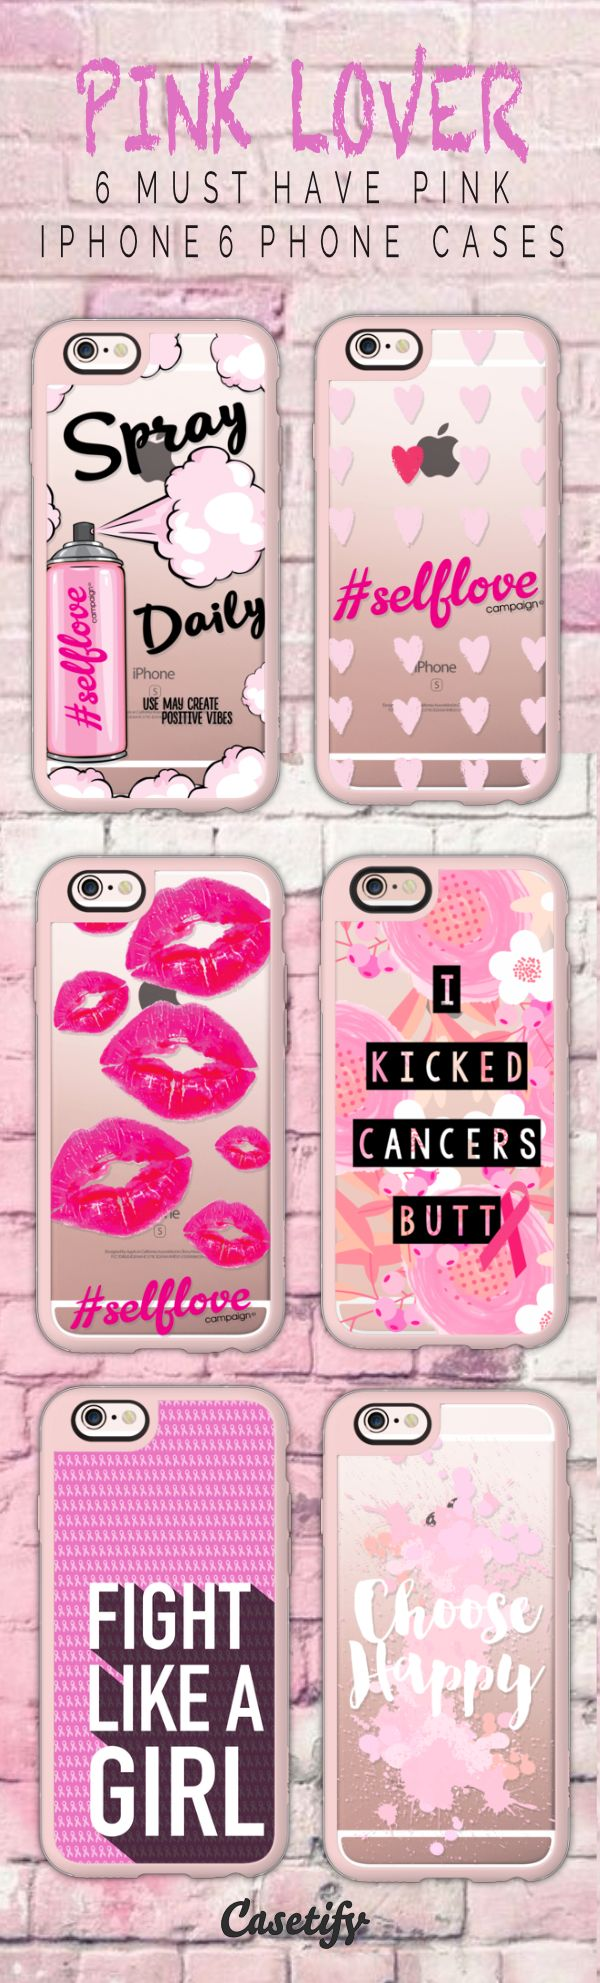 6 must have pink iPhone 6 protective phone case designs | Click through to see more iphone phone case ideas >>> https://www.casetify.com/artworks/BLs1B7aYVC #quote | @casetify